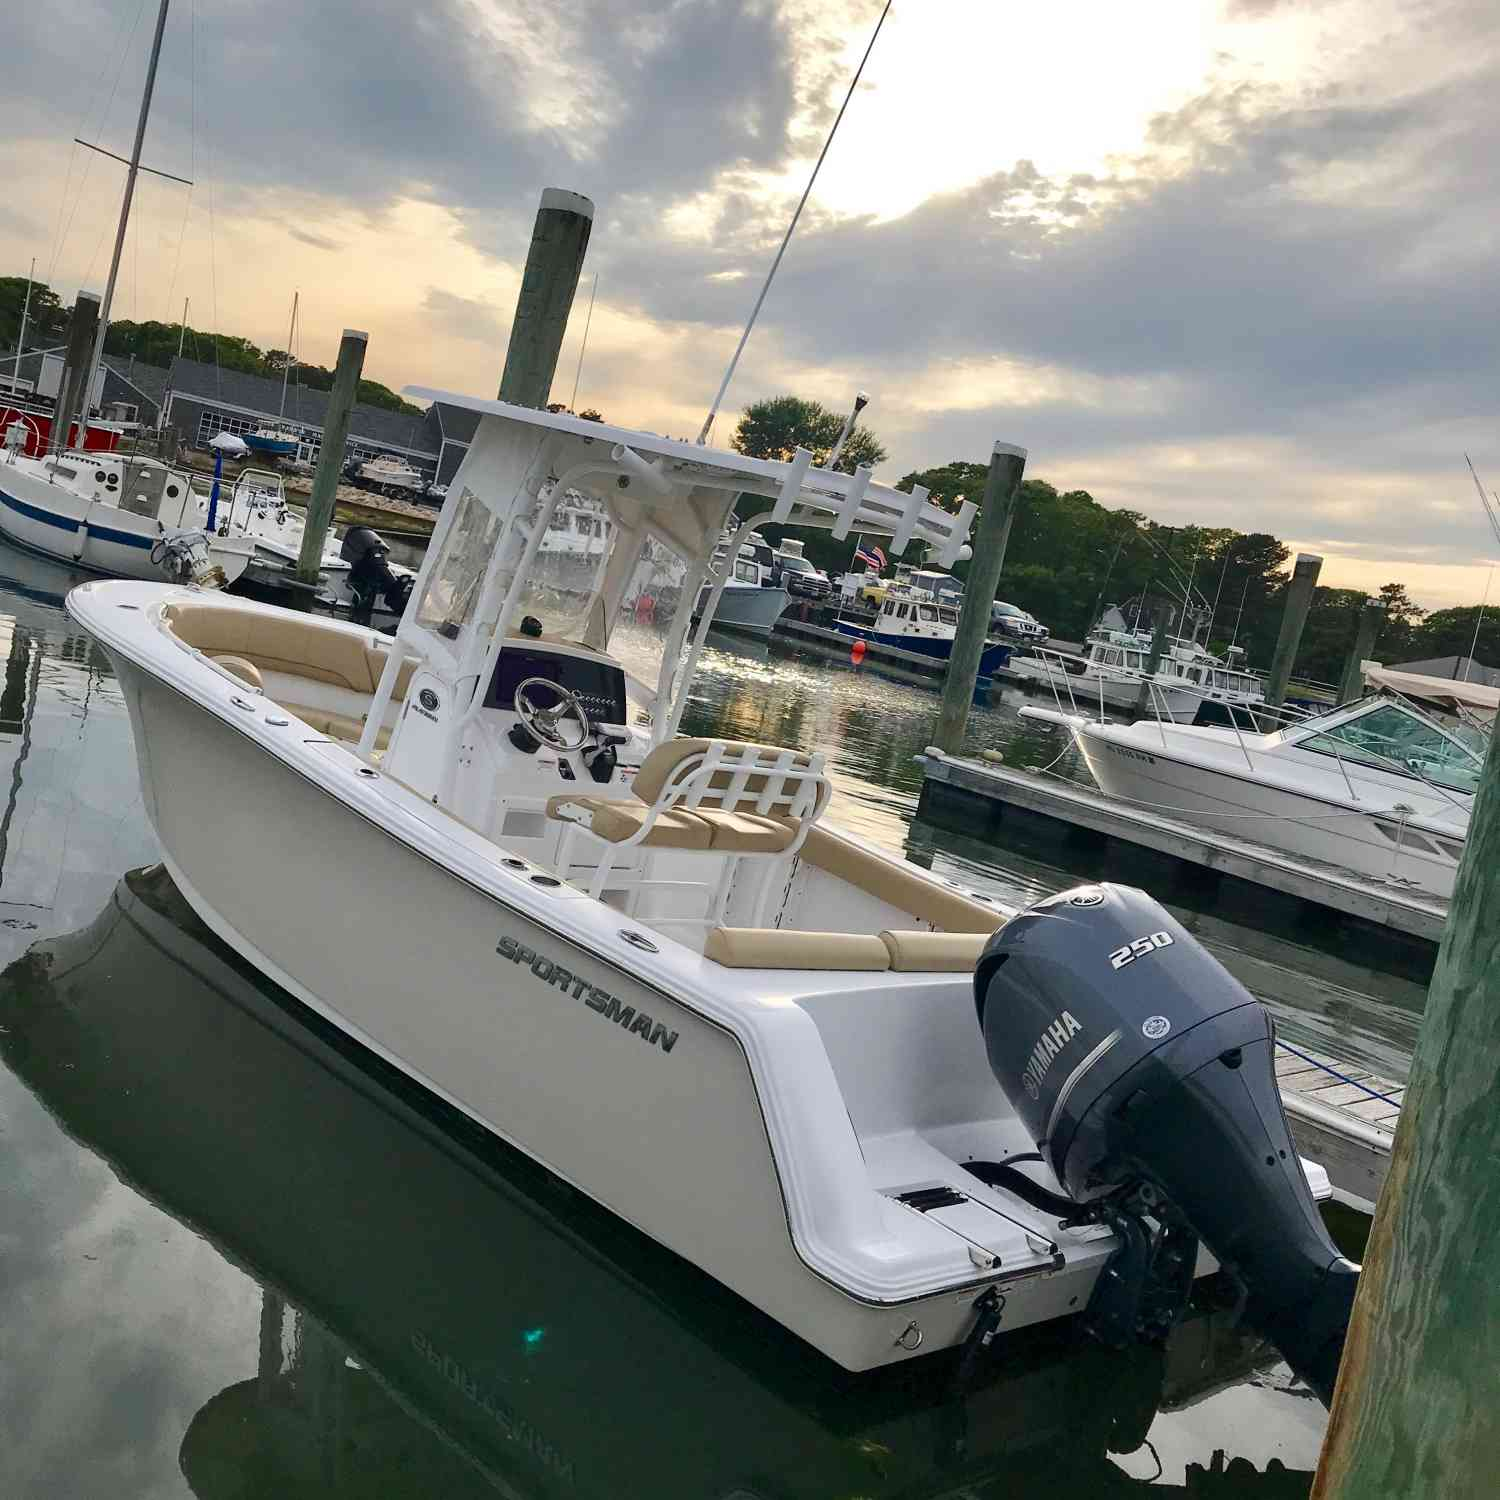 Title: Evening calm at Allen Harbor - On board their Sportsman Open 232 Center Console - Location: Harwich, MA. Participating in the Photo Contest #SportsmanJune2018